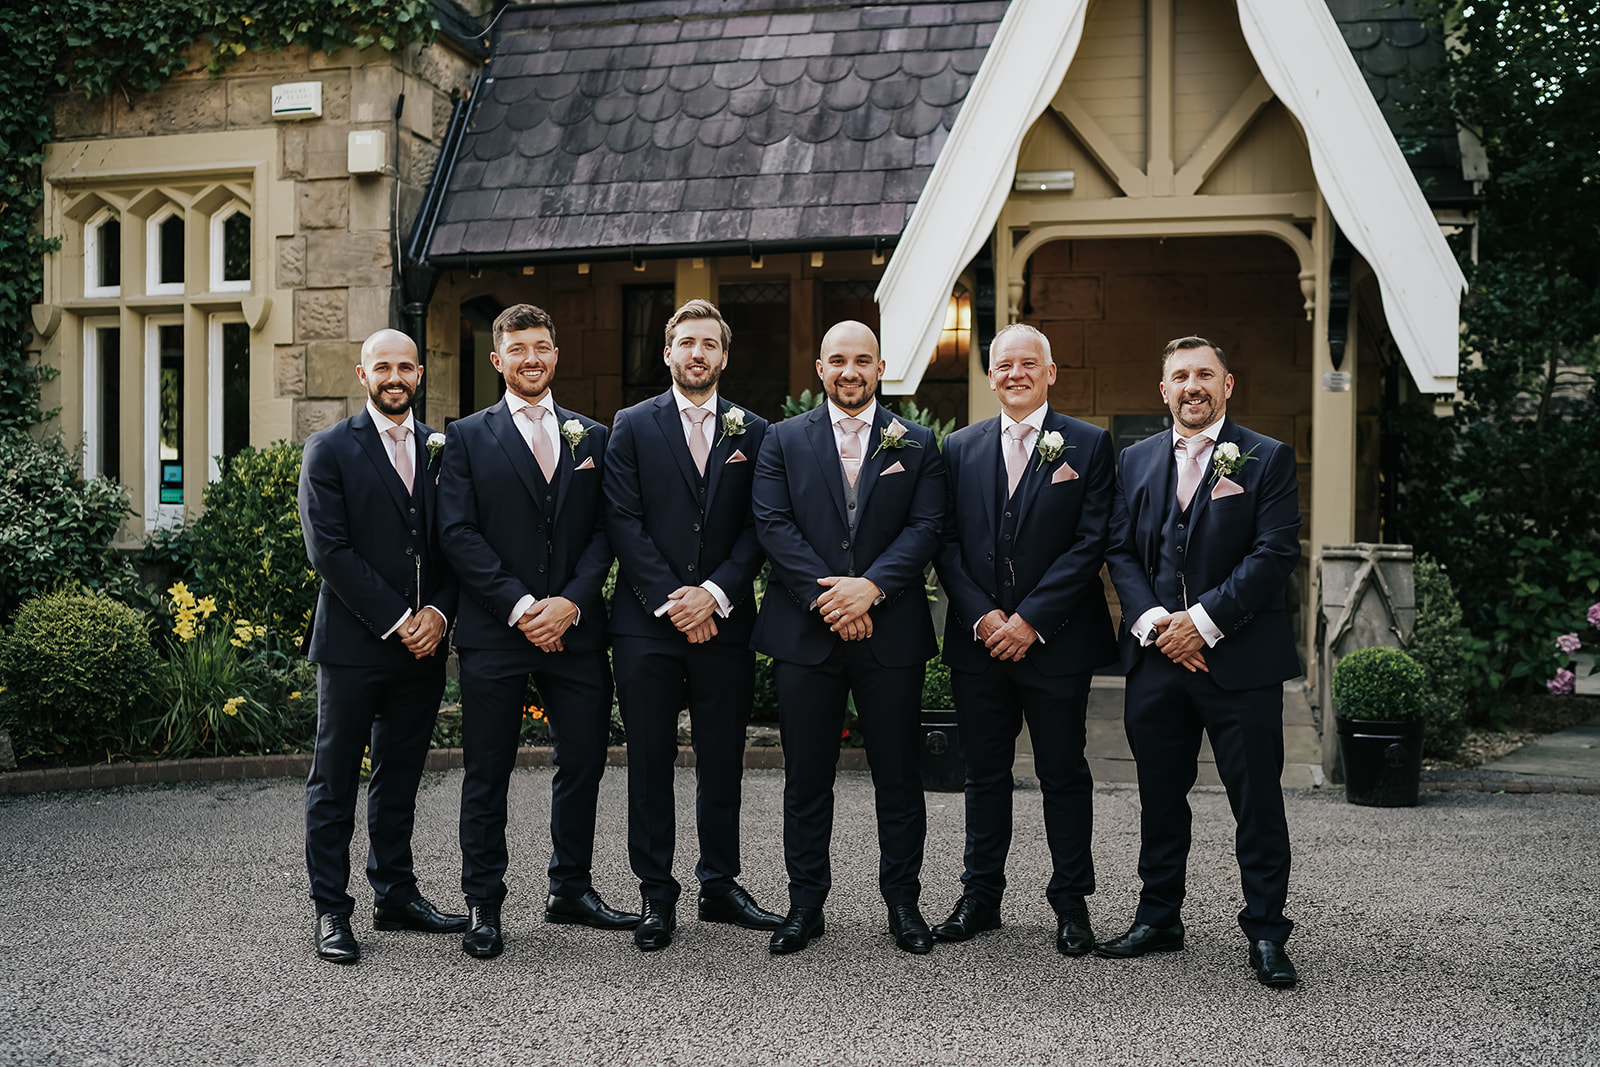 Groom and groomsmen infront of West Tower